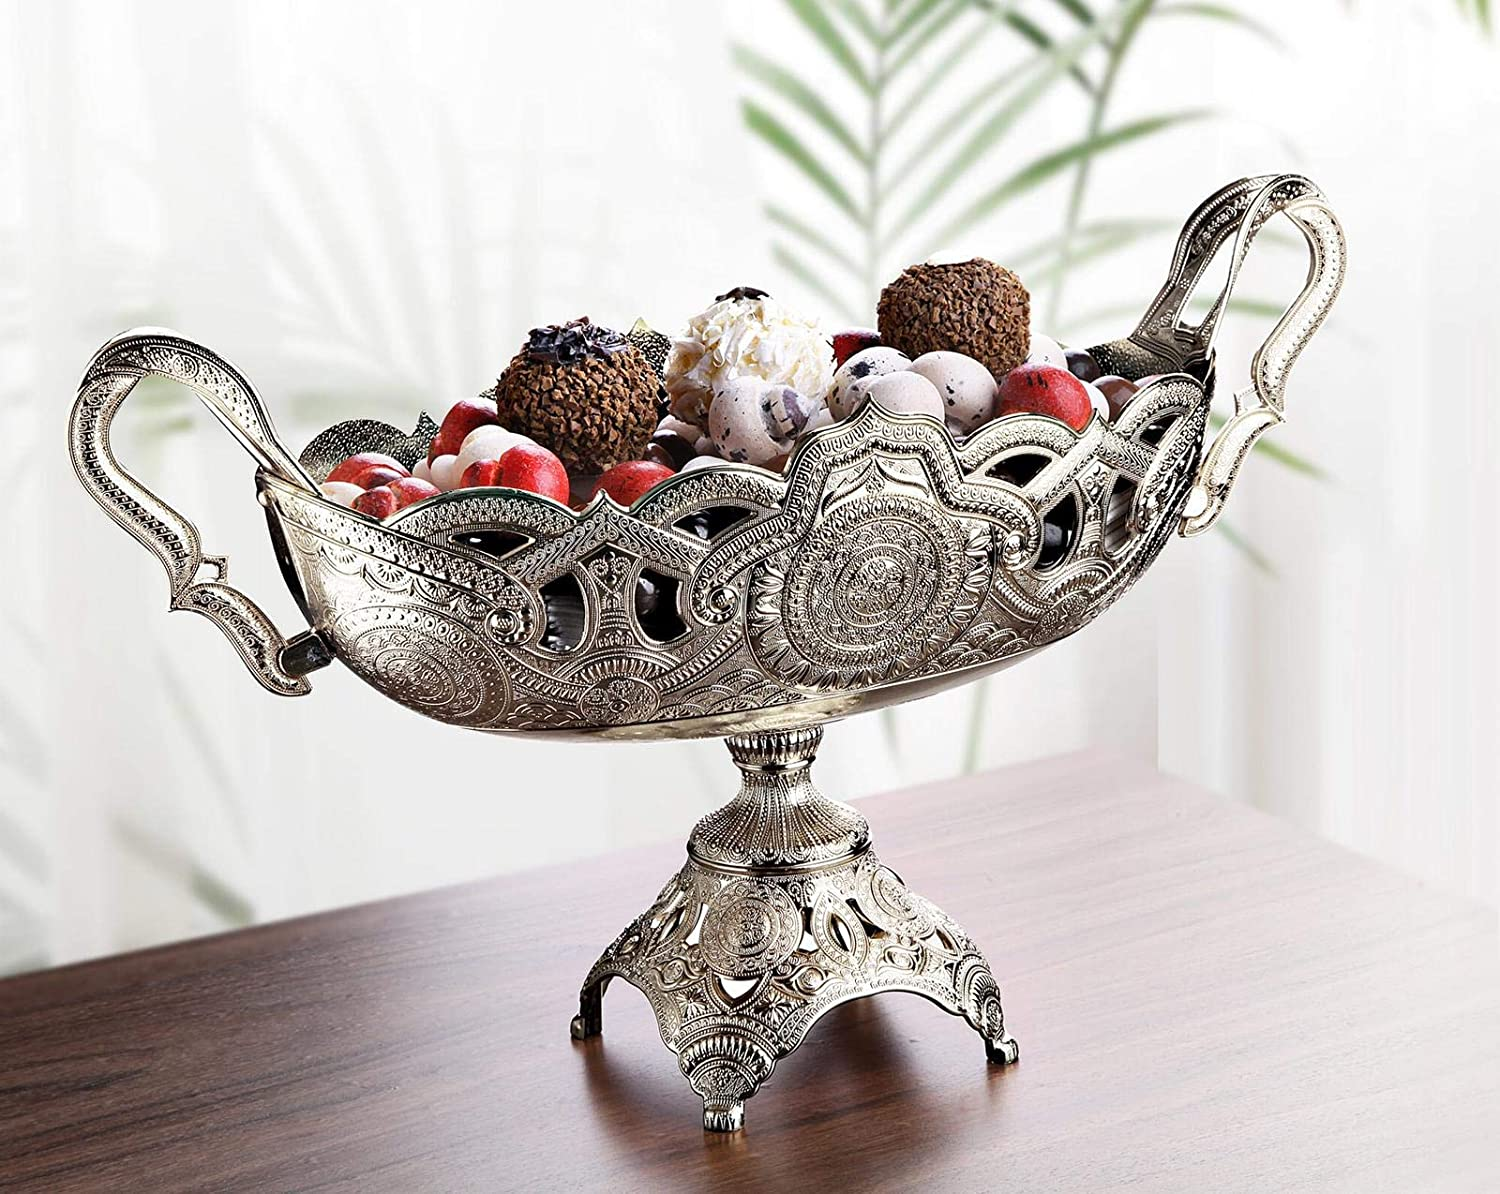 Luxury Decorative Table Centerpiece Bowl For Kitchen Living Room Gold Silver Fruit Bowl Basket Centerpiece For Dining Room Table Candy Serving Bowl For Buffet Wedding Centerpieces Decor Silver 2 Amazon Ca Home